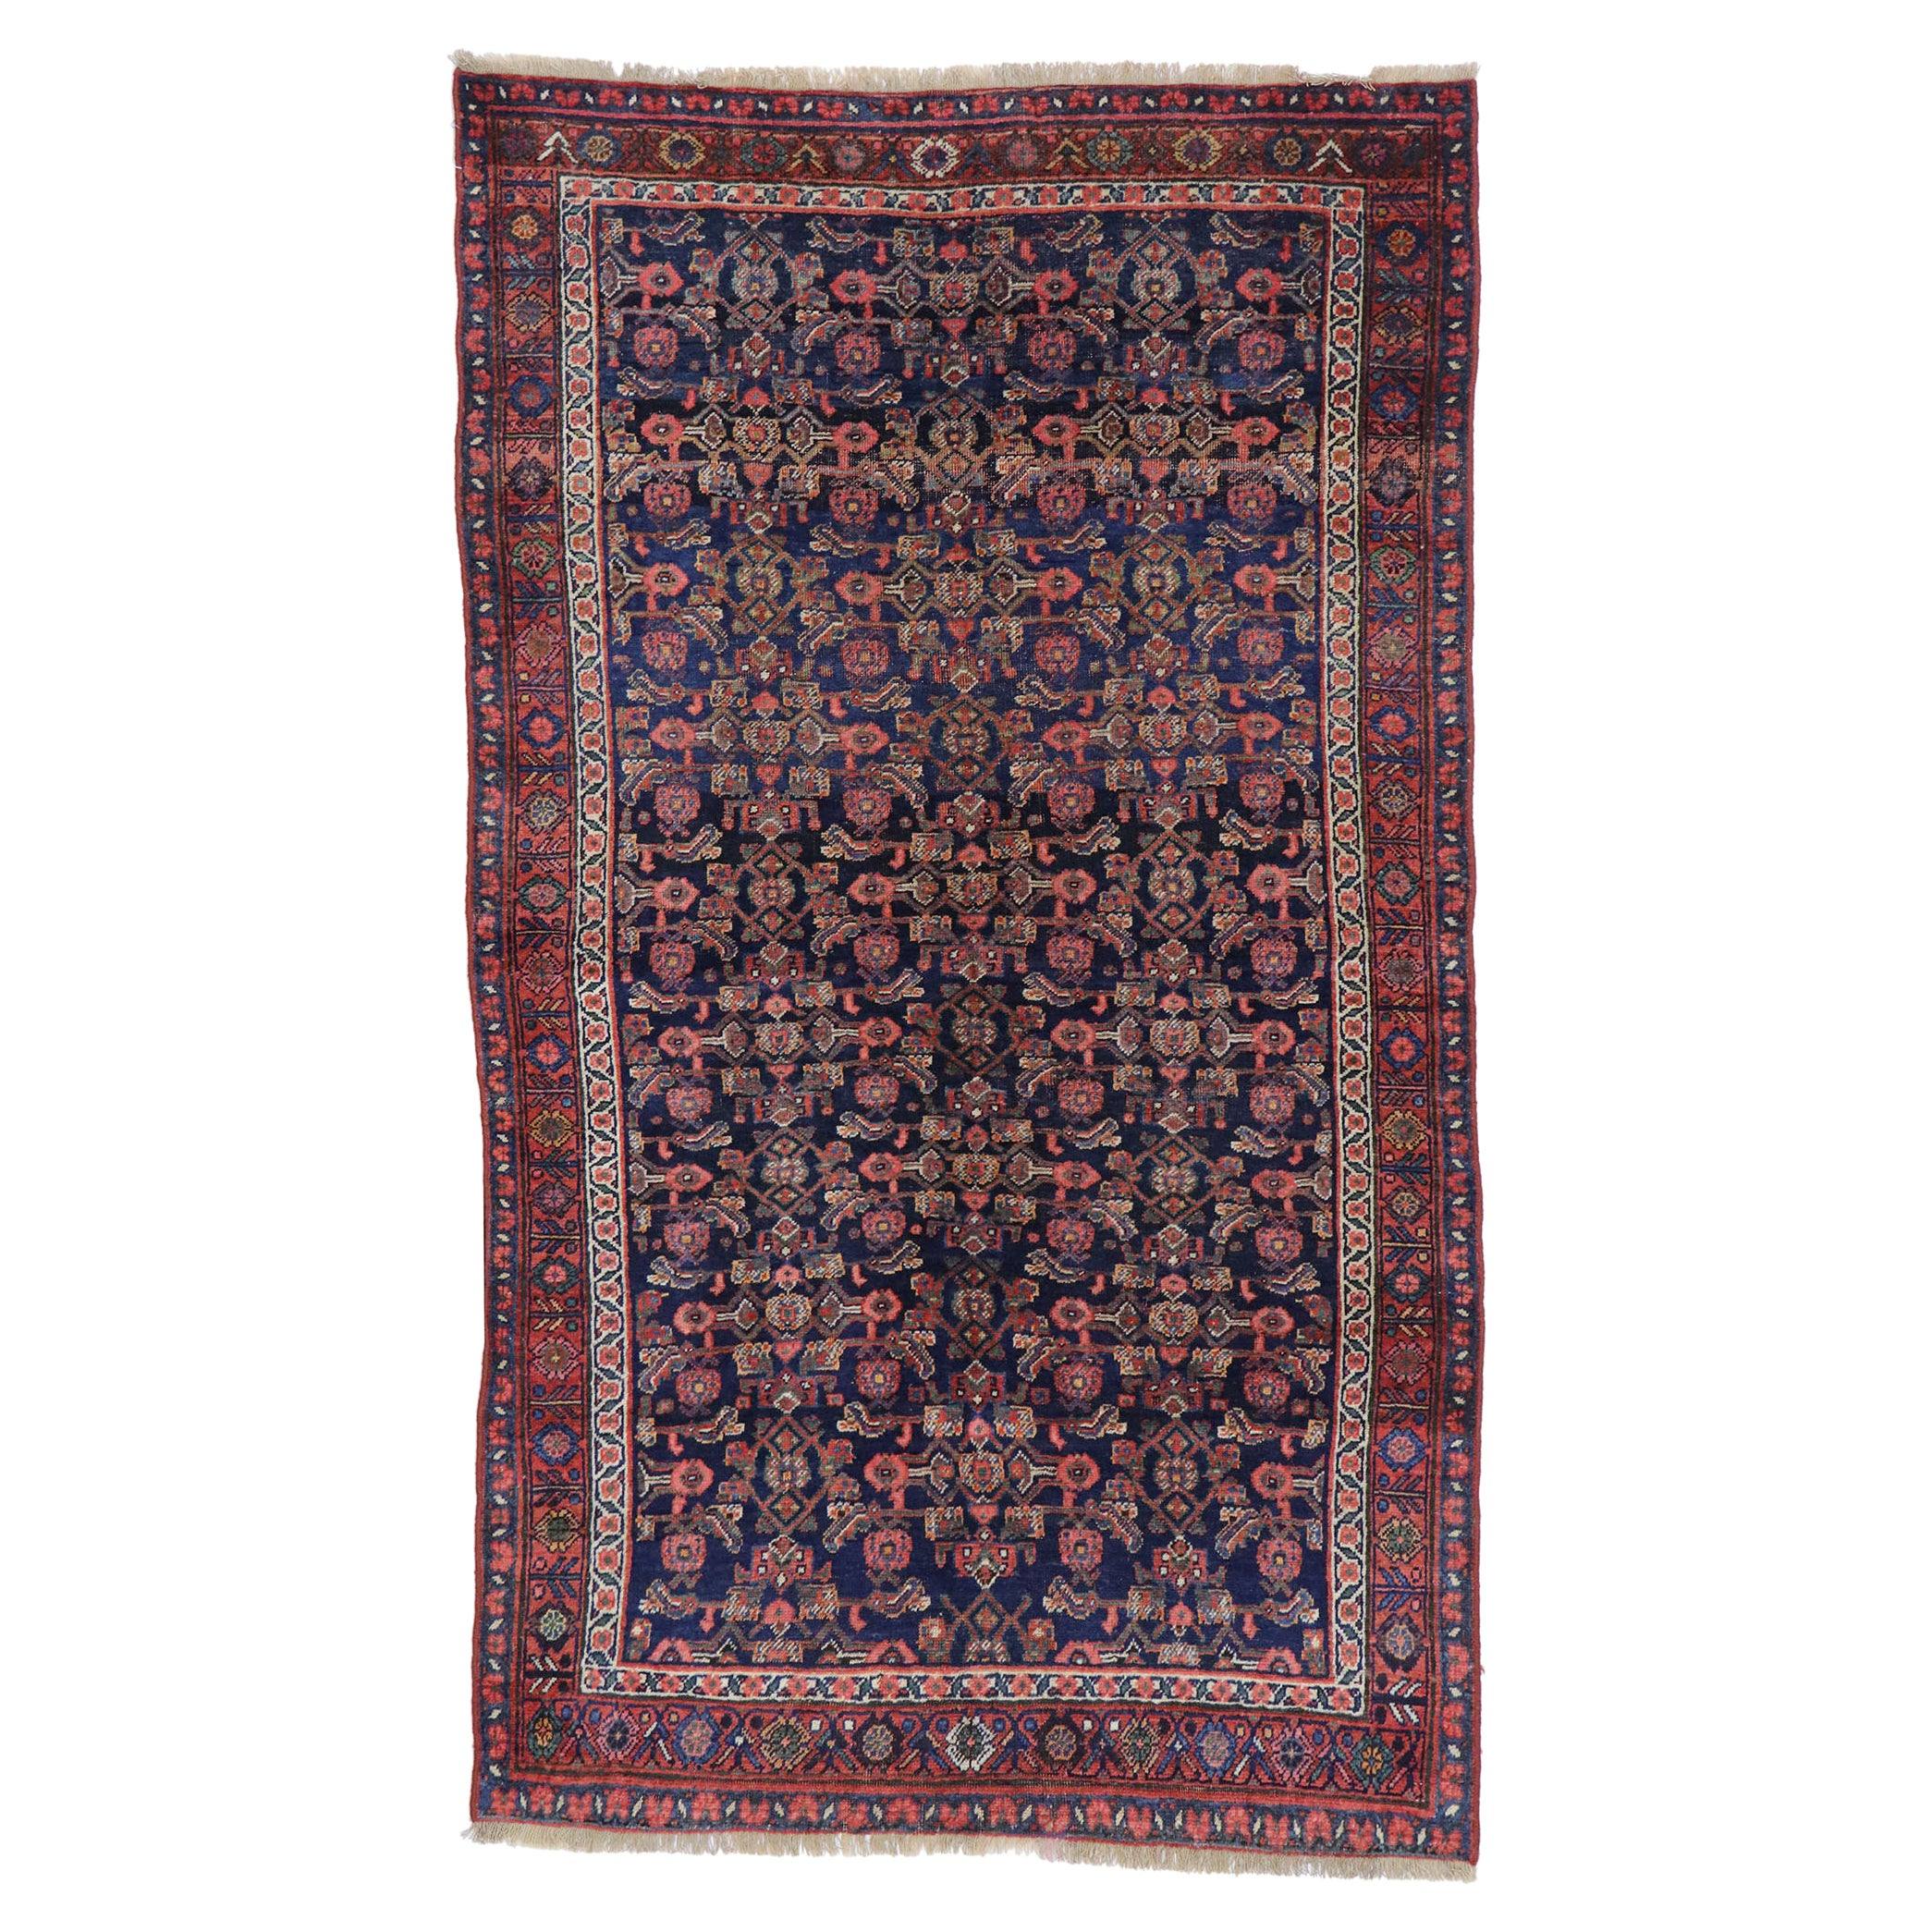 Antique Persian Bijar Rug with Victorian Style